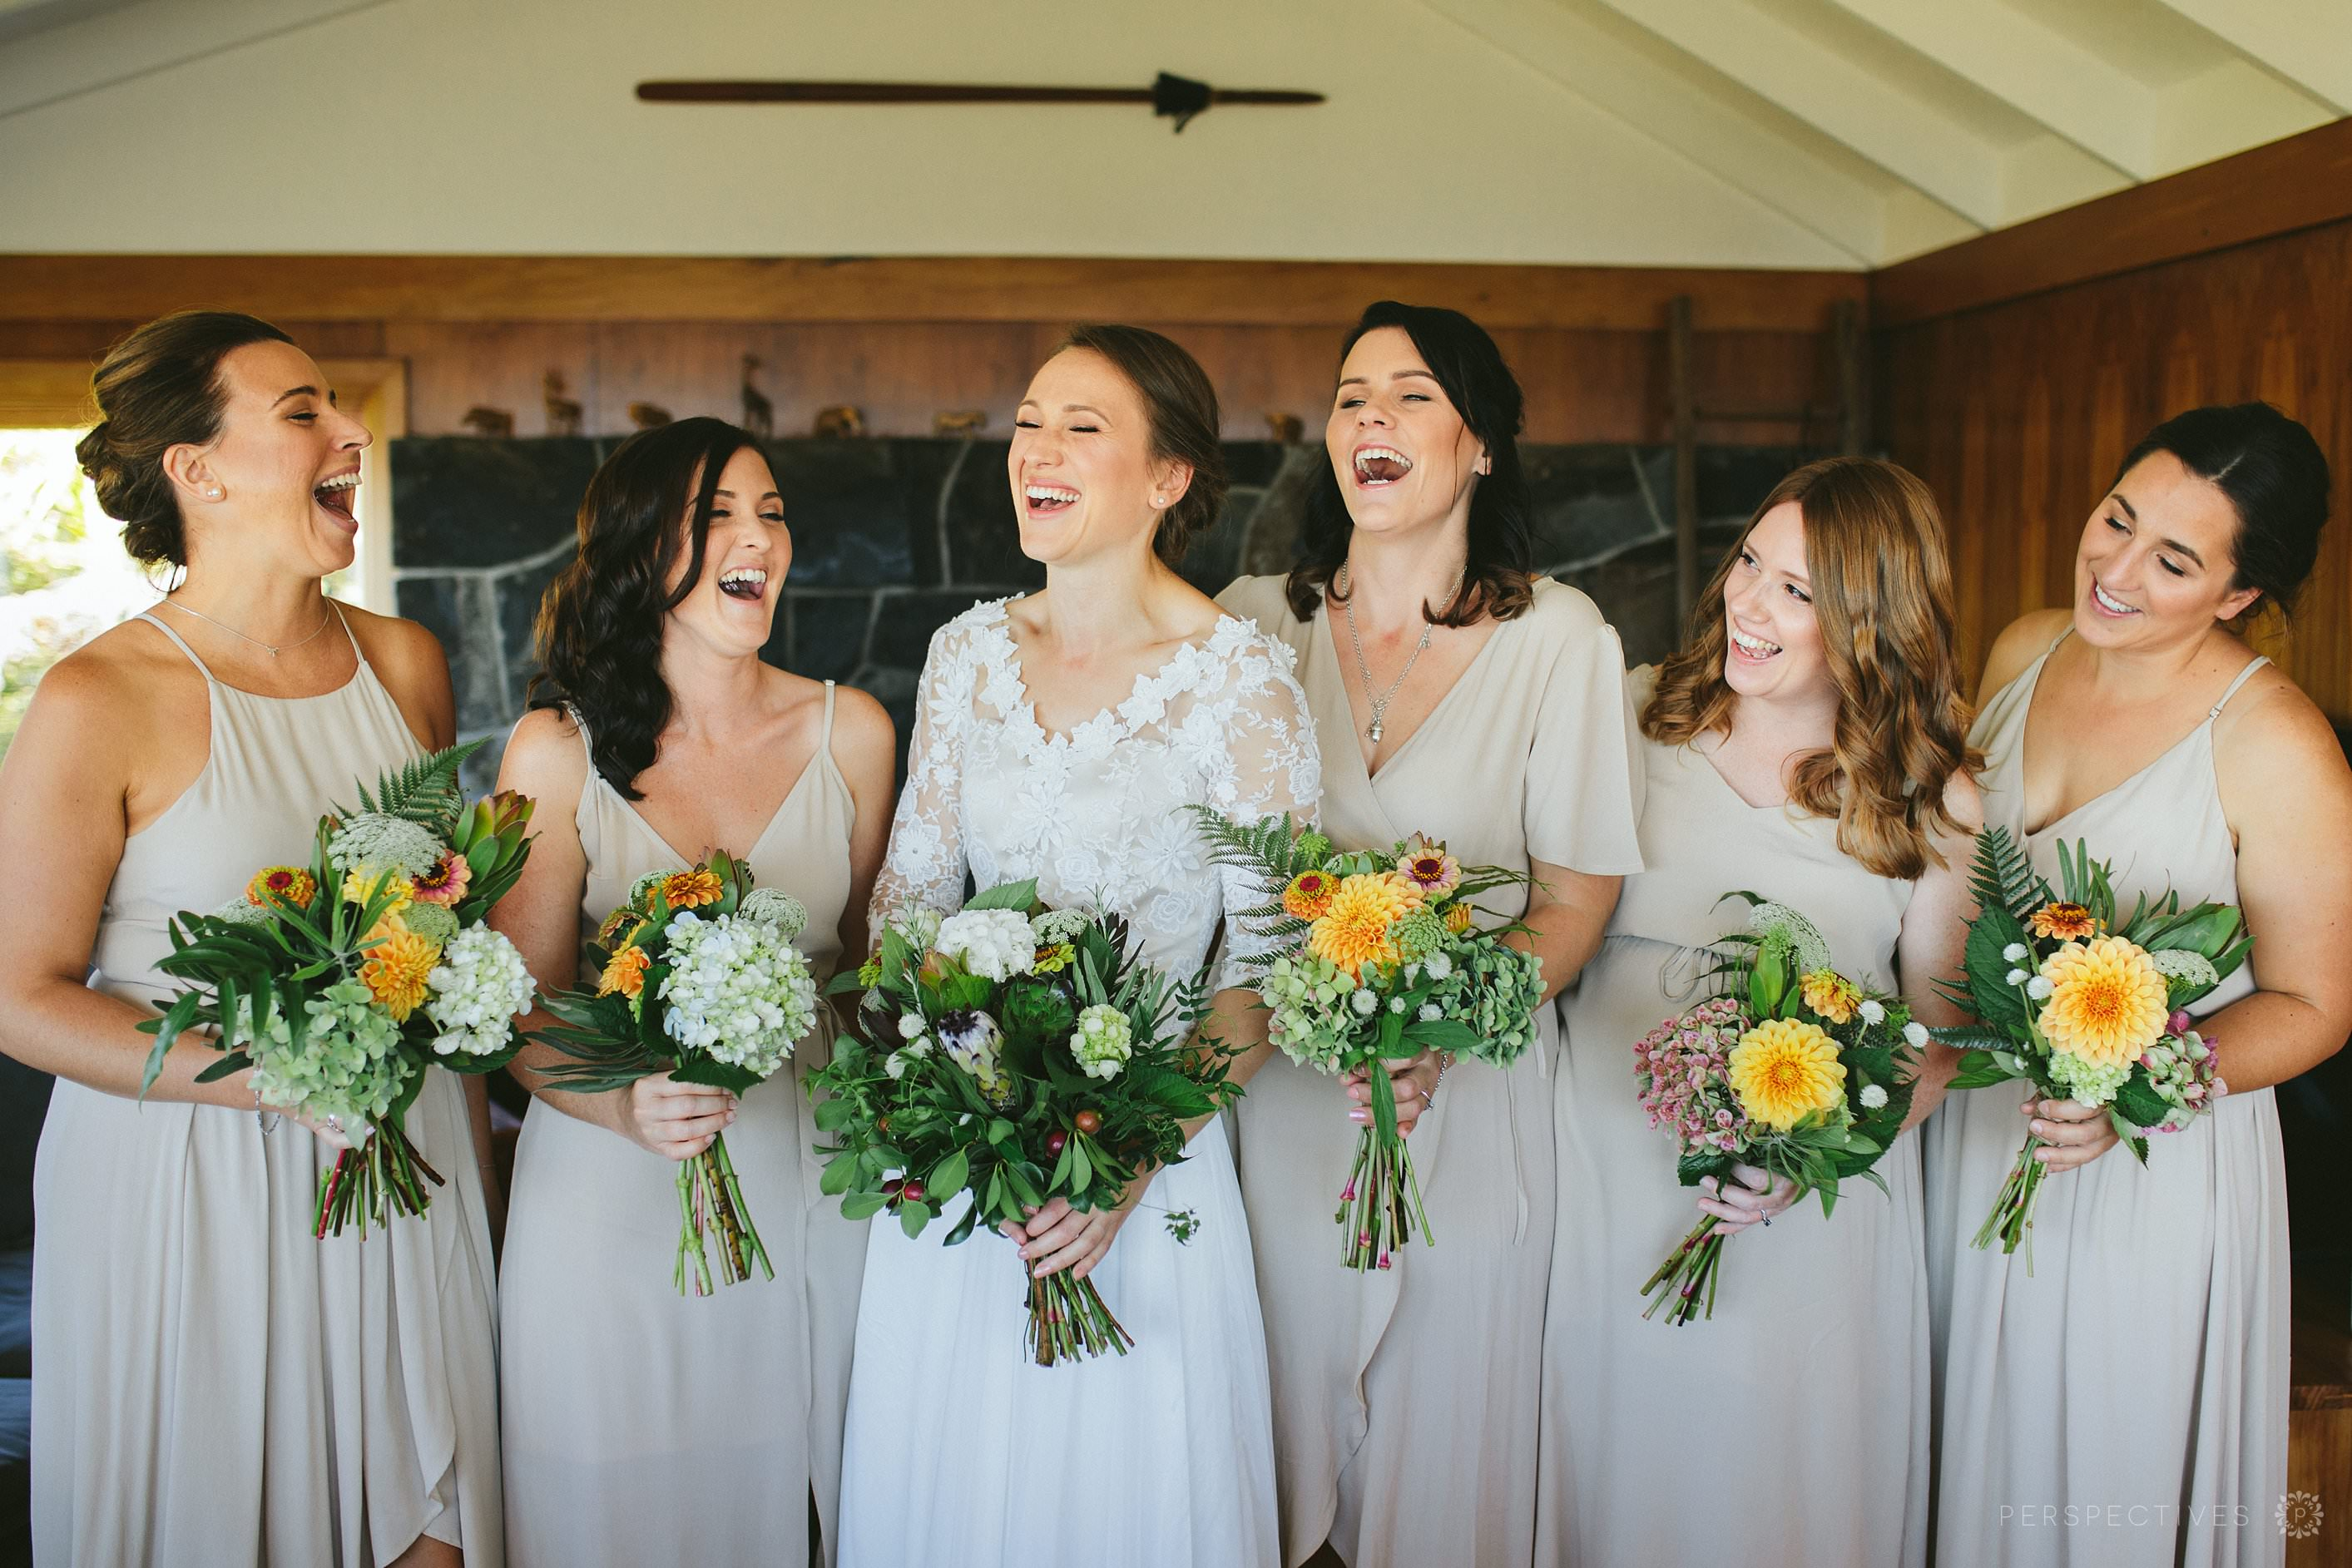 Bridesmaids with homemade DIY bouquets